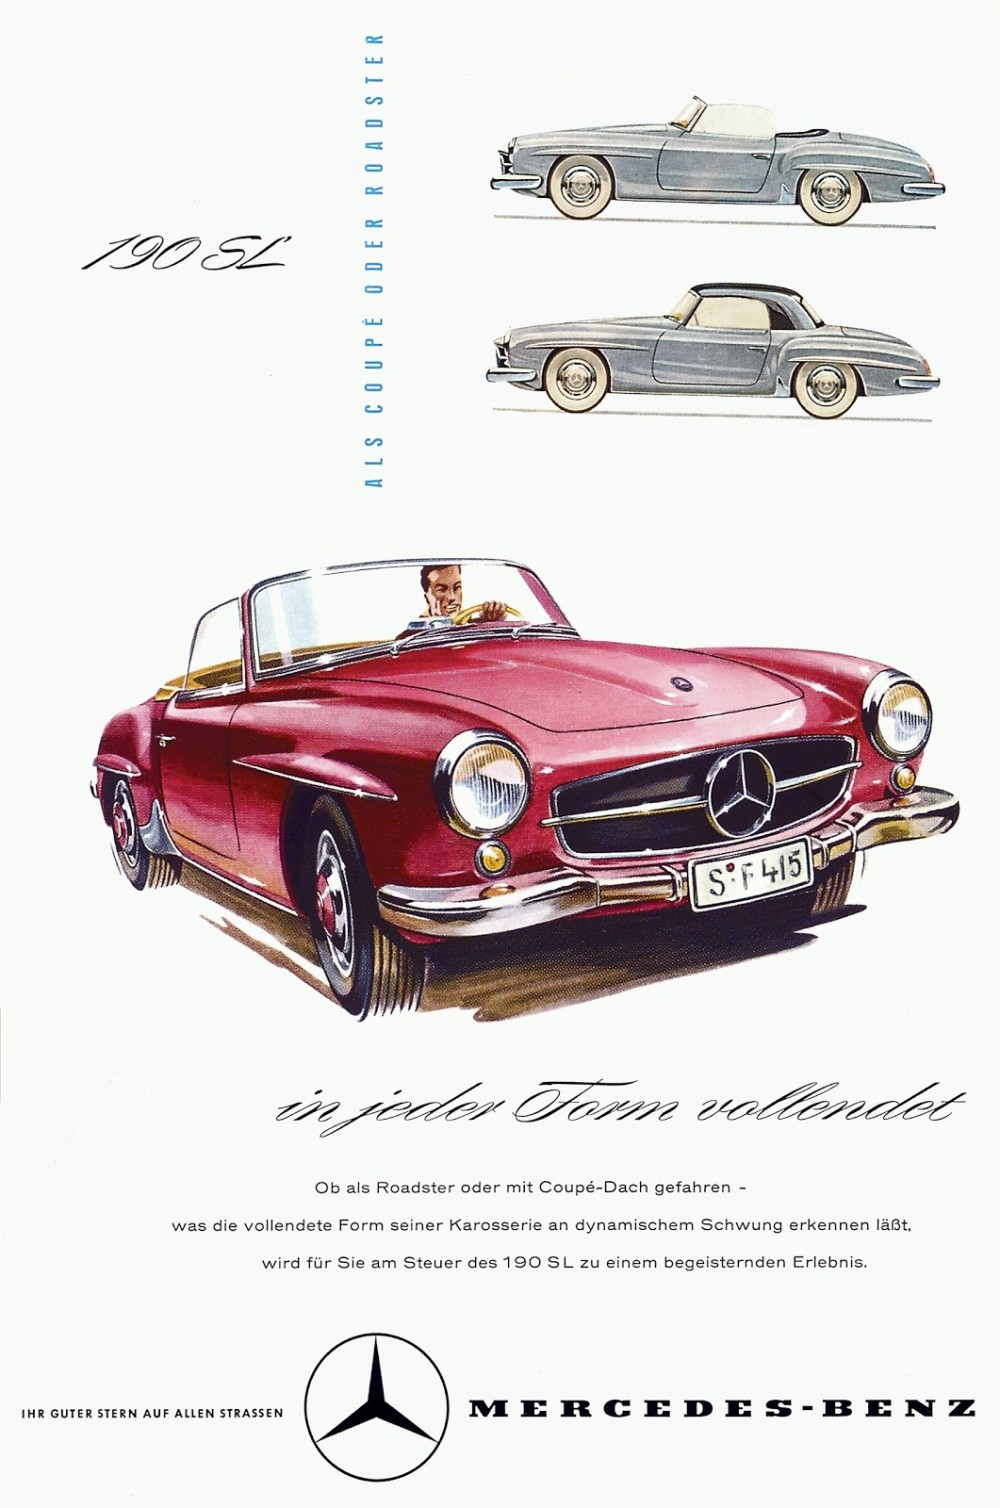 1956-Mercedes-Benz-190-SL-in-jeder-Form-vollendet-1000x1508.jpg